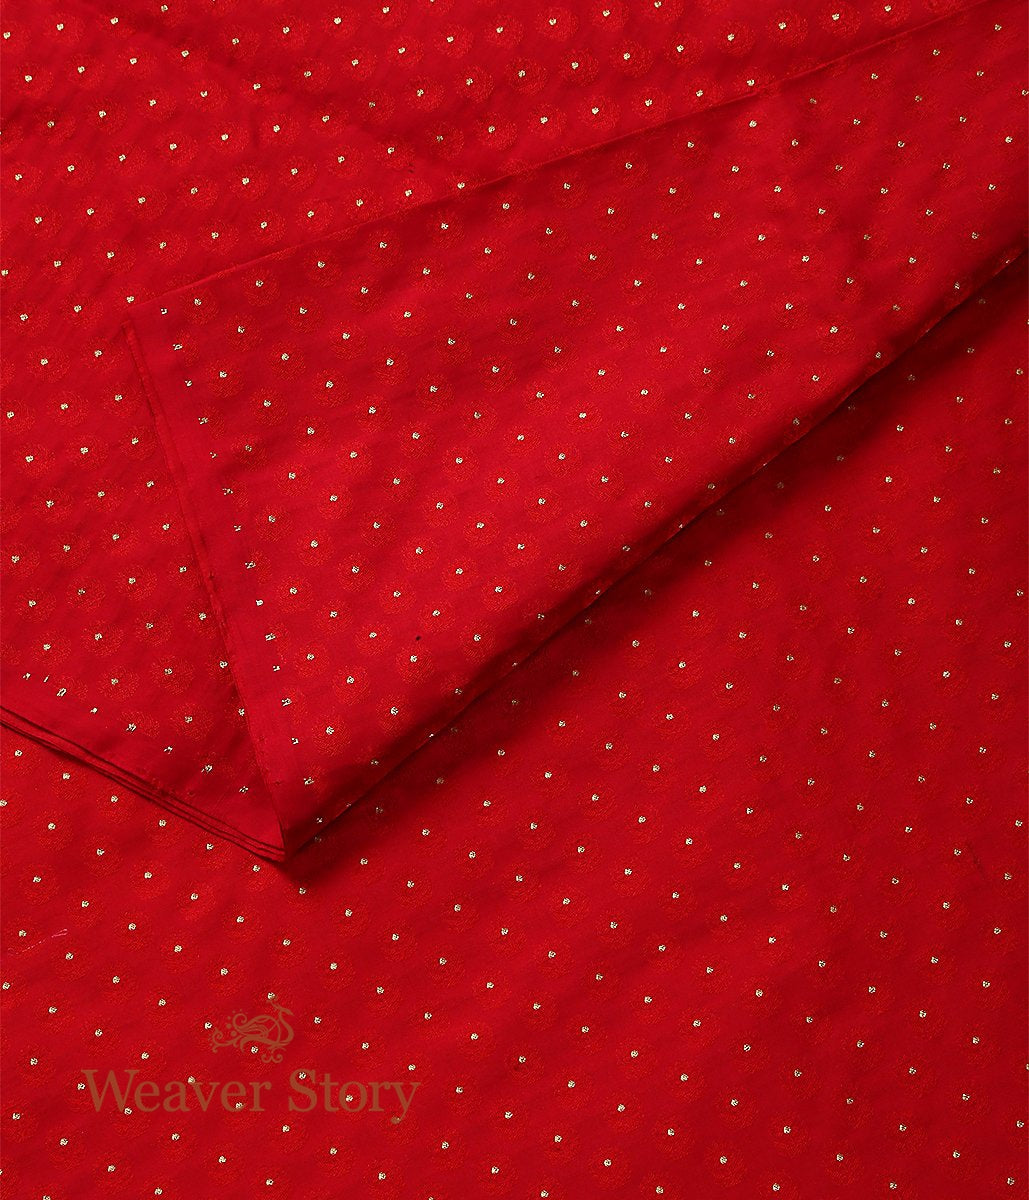 Handwoven Red Zari Booti Tanchoi Fabric